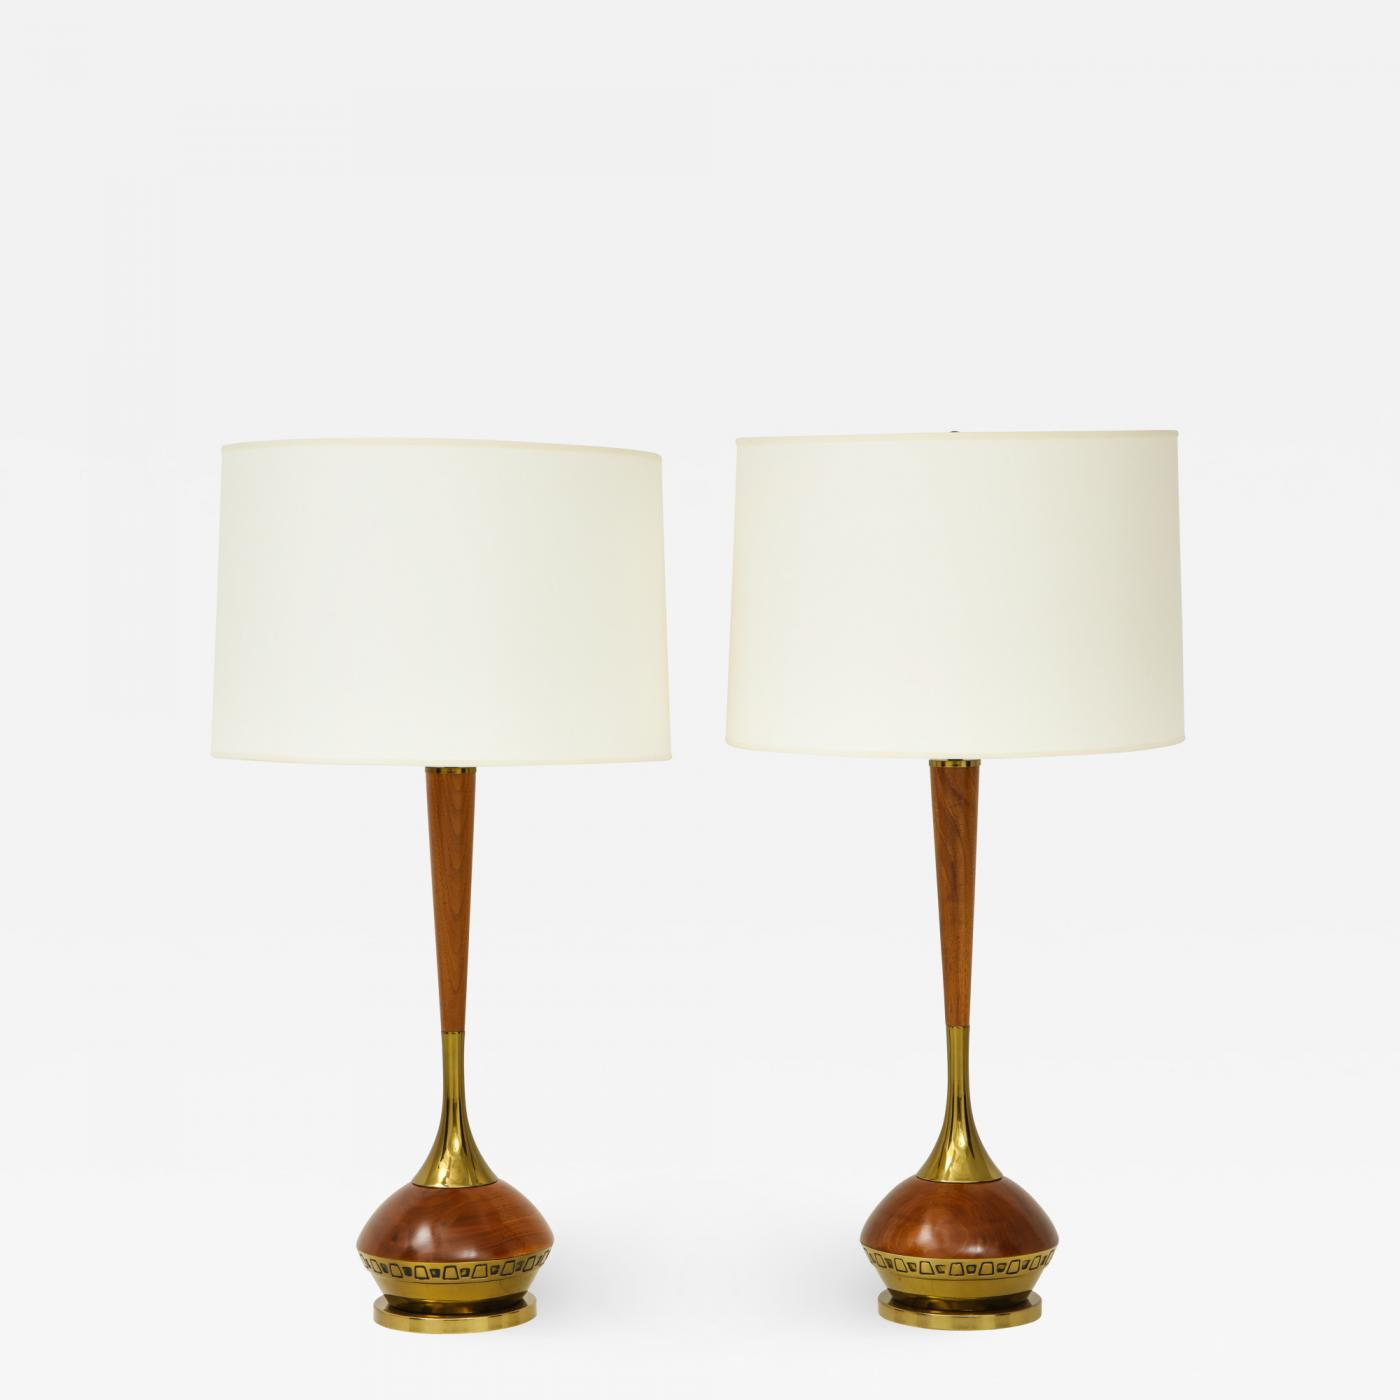 Pair Of Mid Century Modern Table Lamps By Laurel Lamp Company